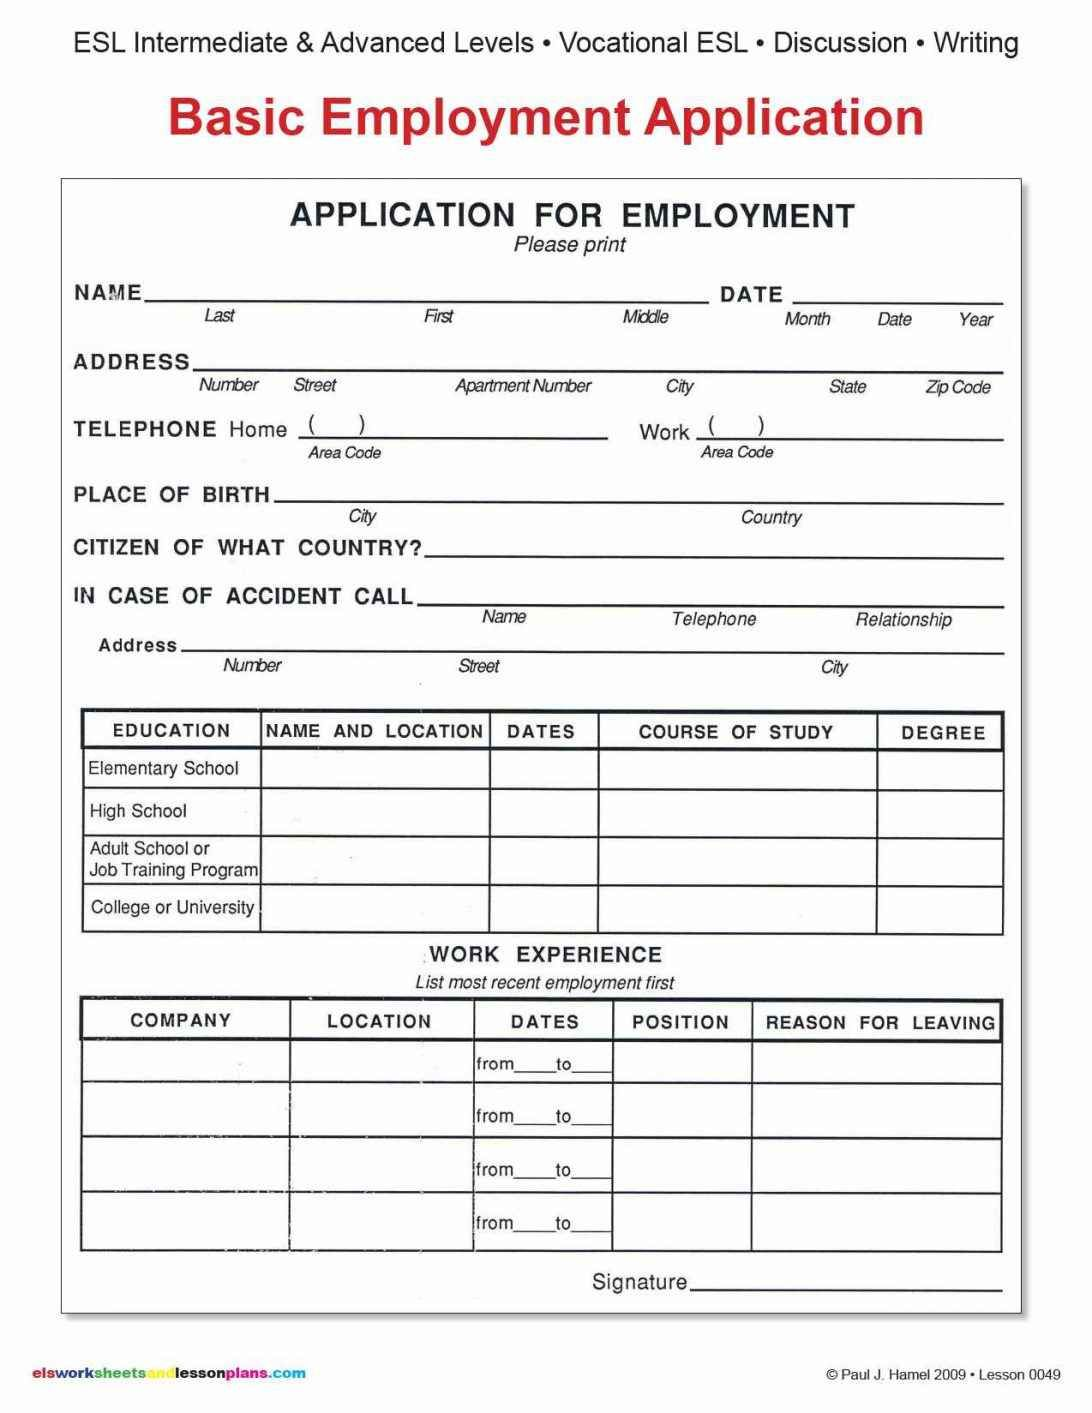 On The Job Training Form Sample In